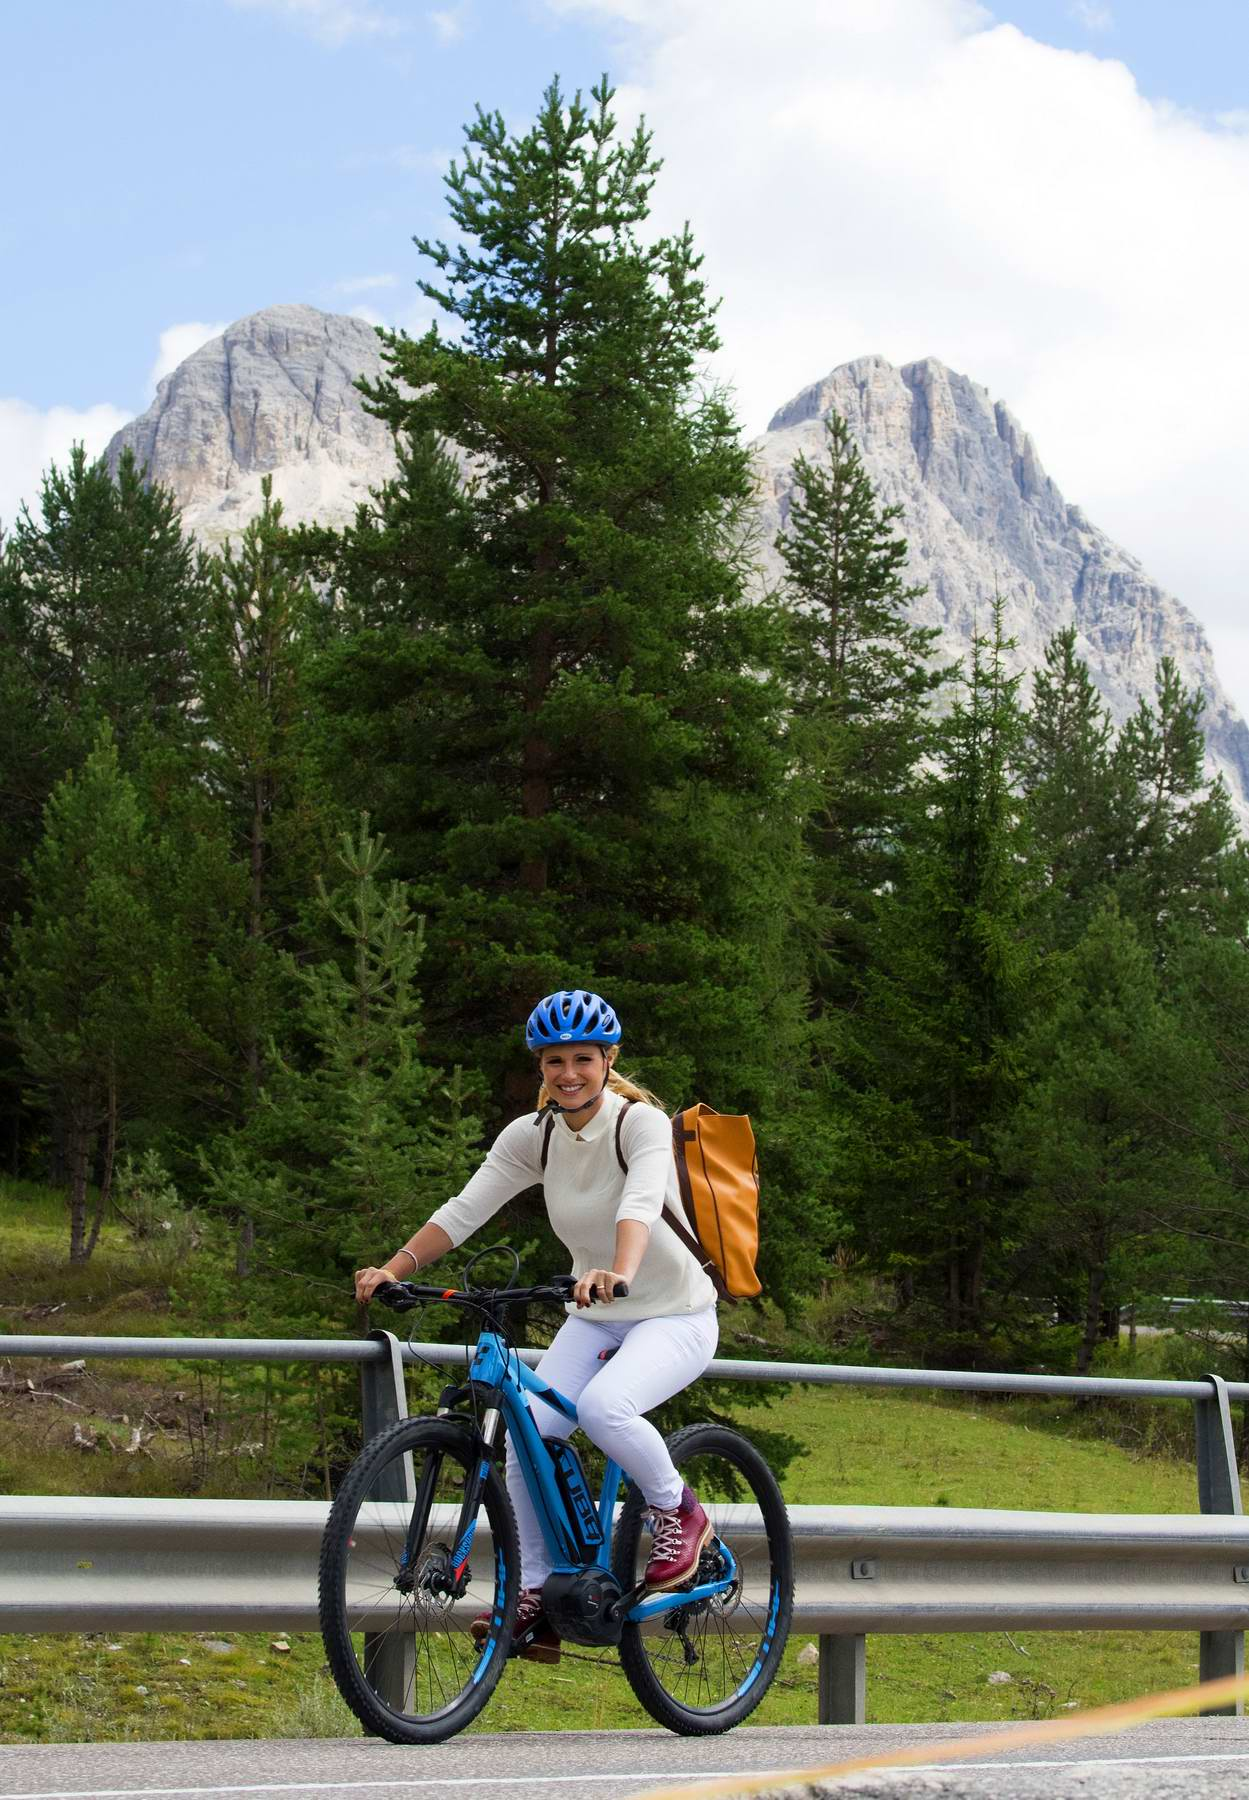 Michelle Hunziker enjoying a bike ride in the Dolomiti mountains in San Cassiano in Badia, Italy